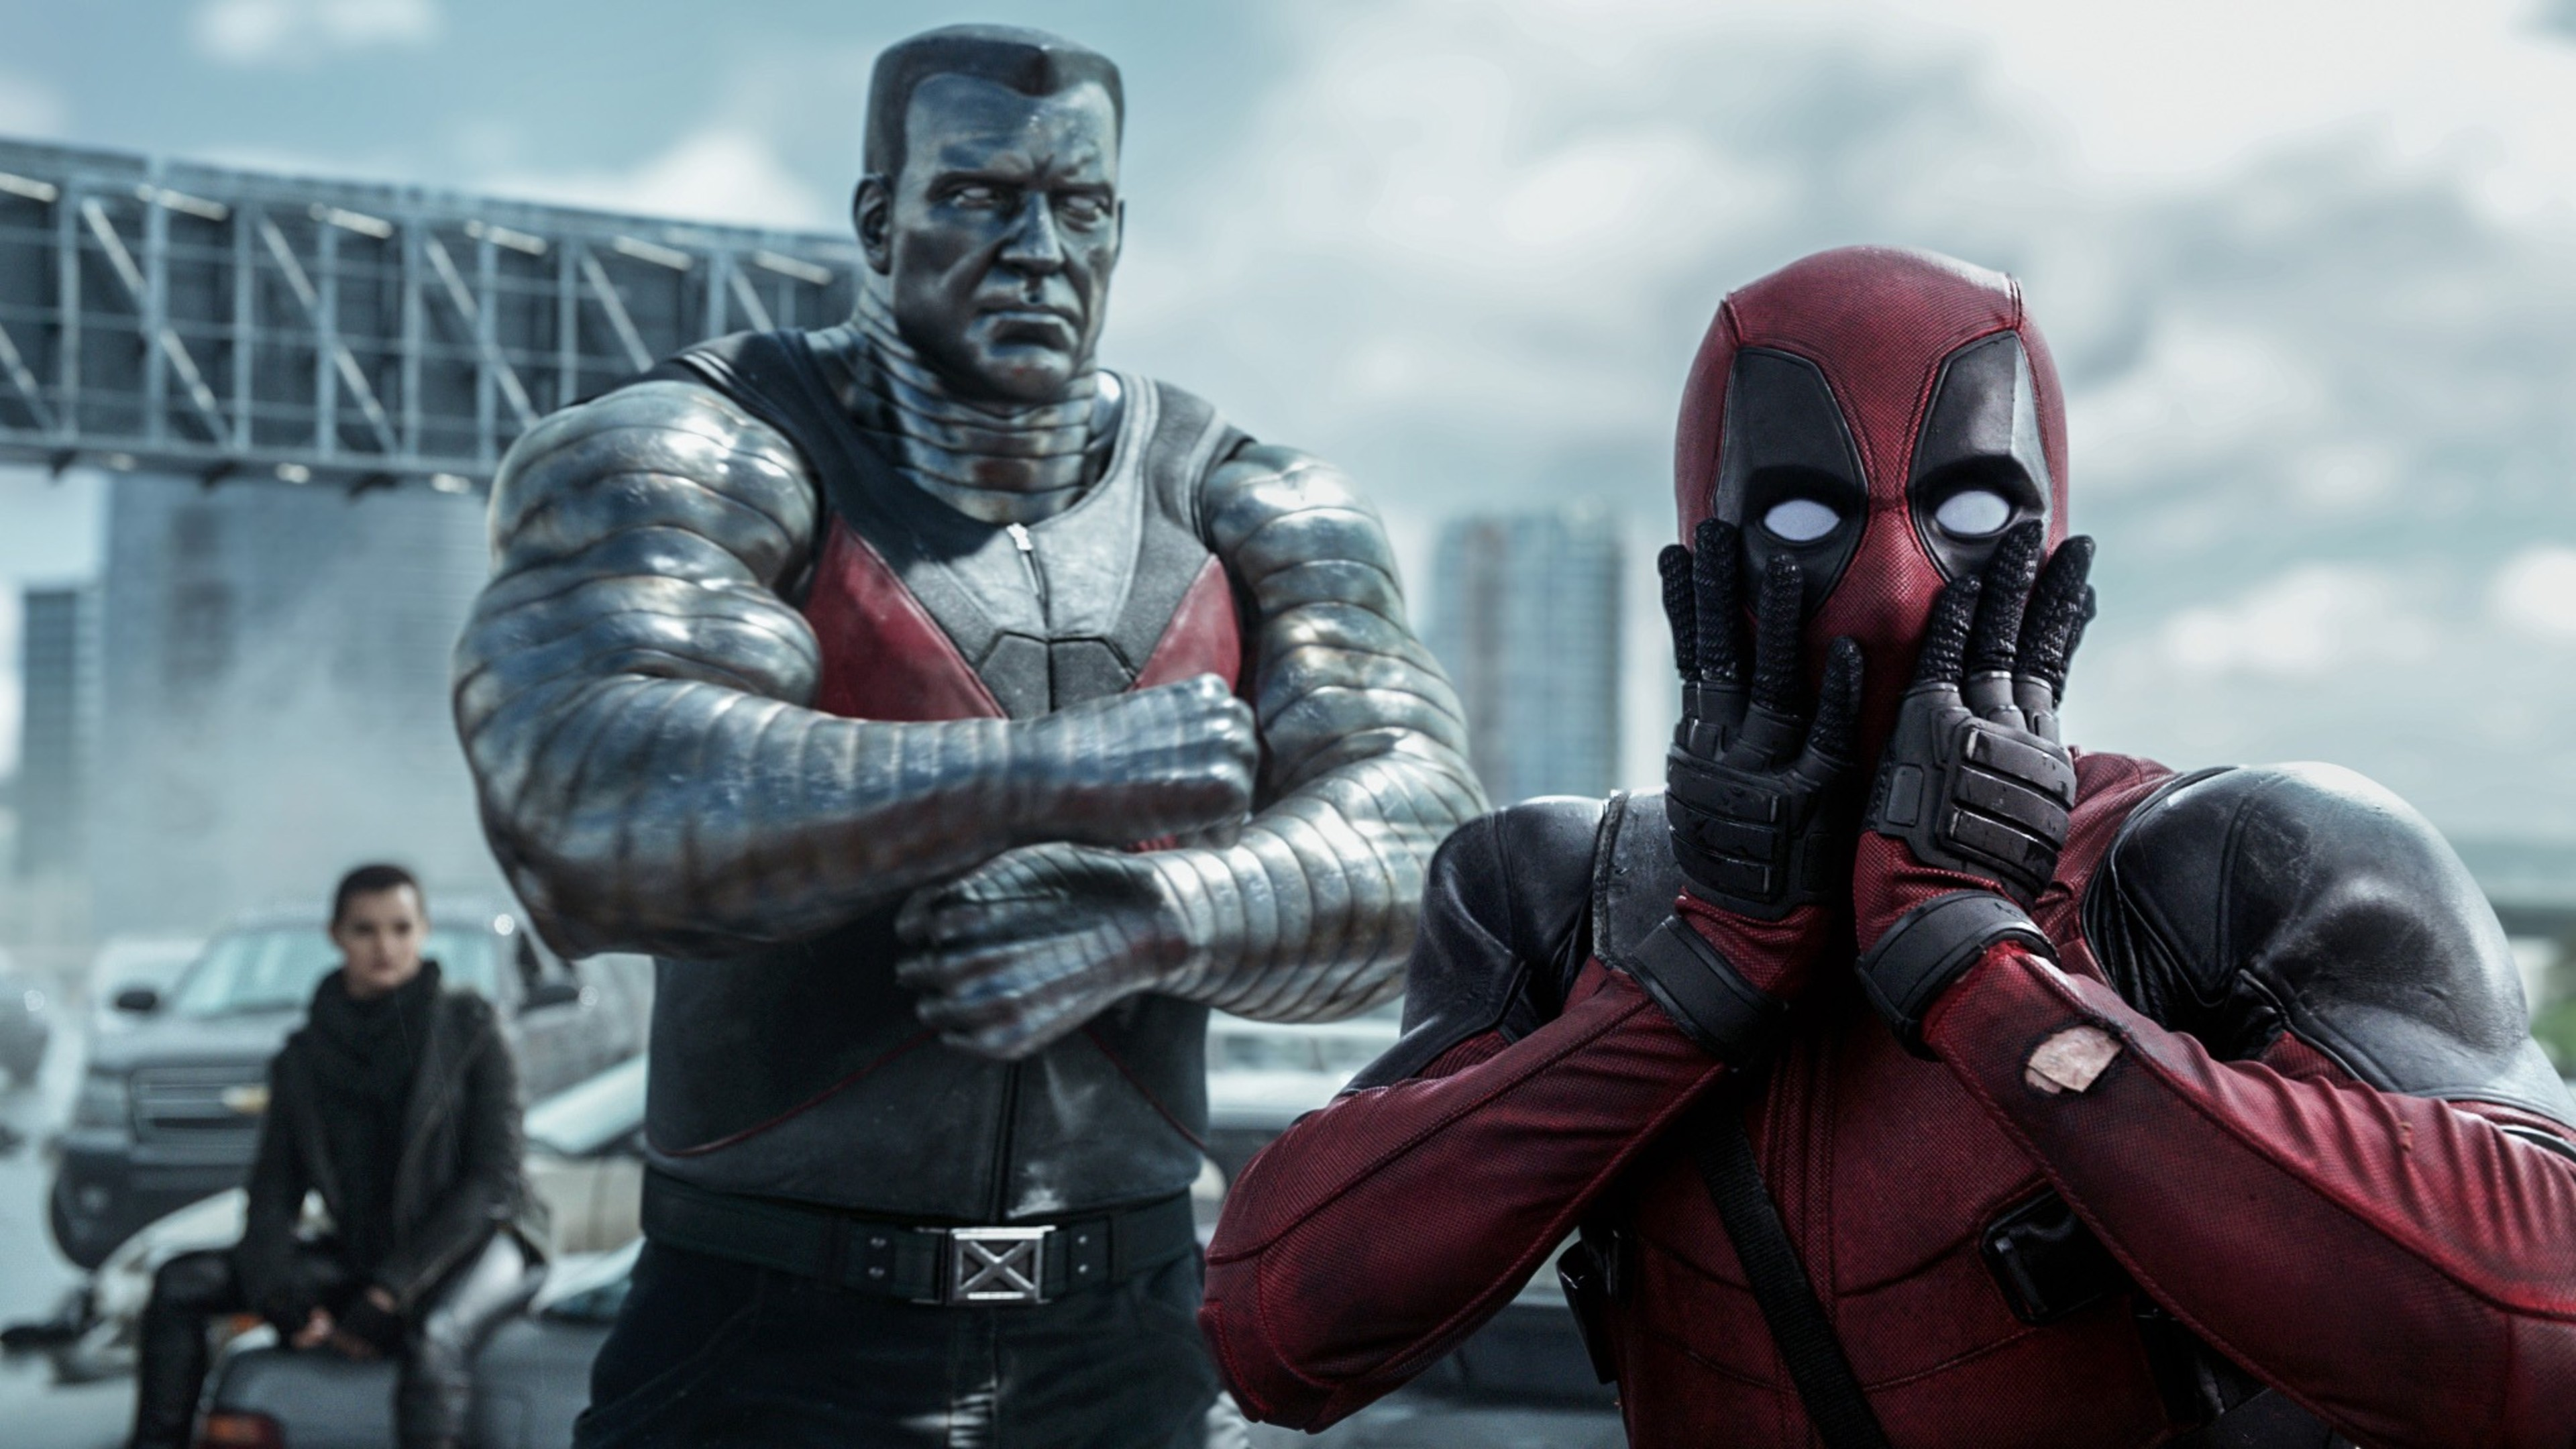 1366x768 Deadpool Resolution HD 4k Wallpapers Images